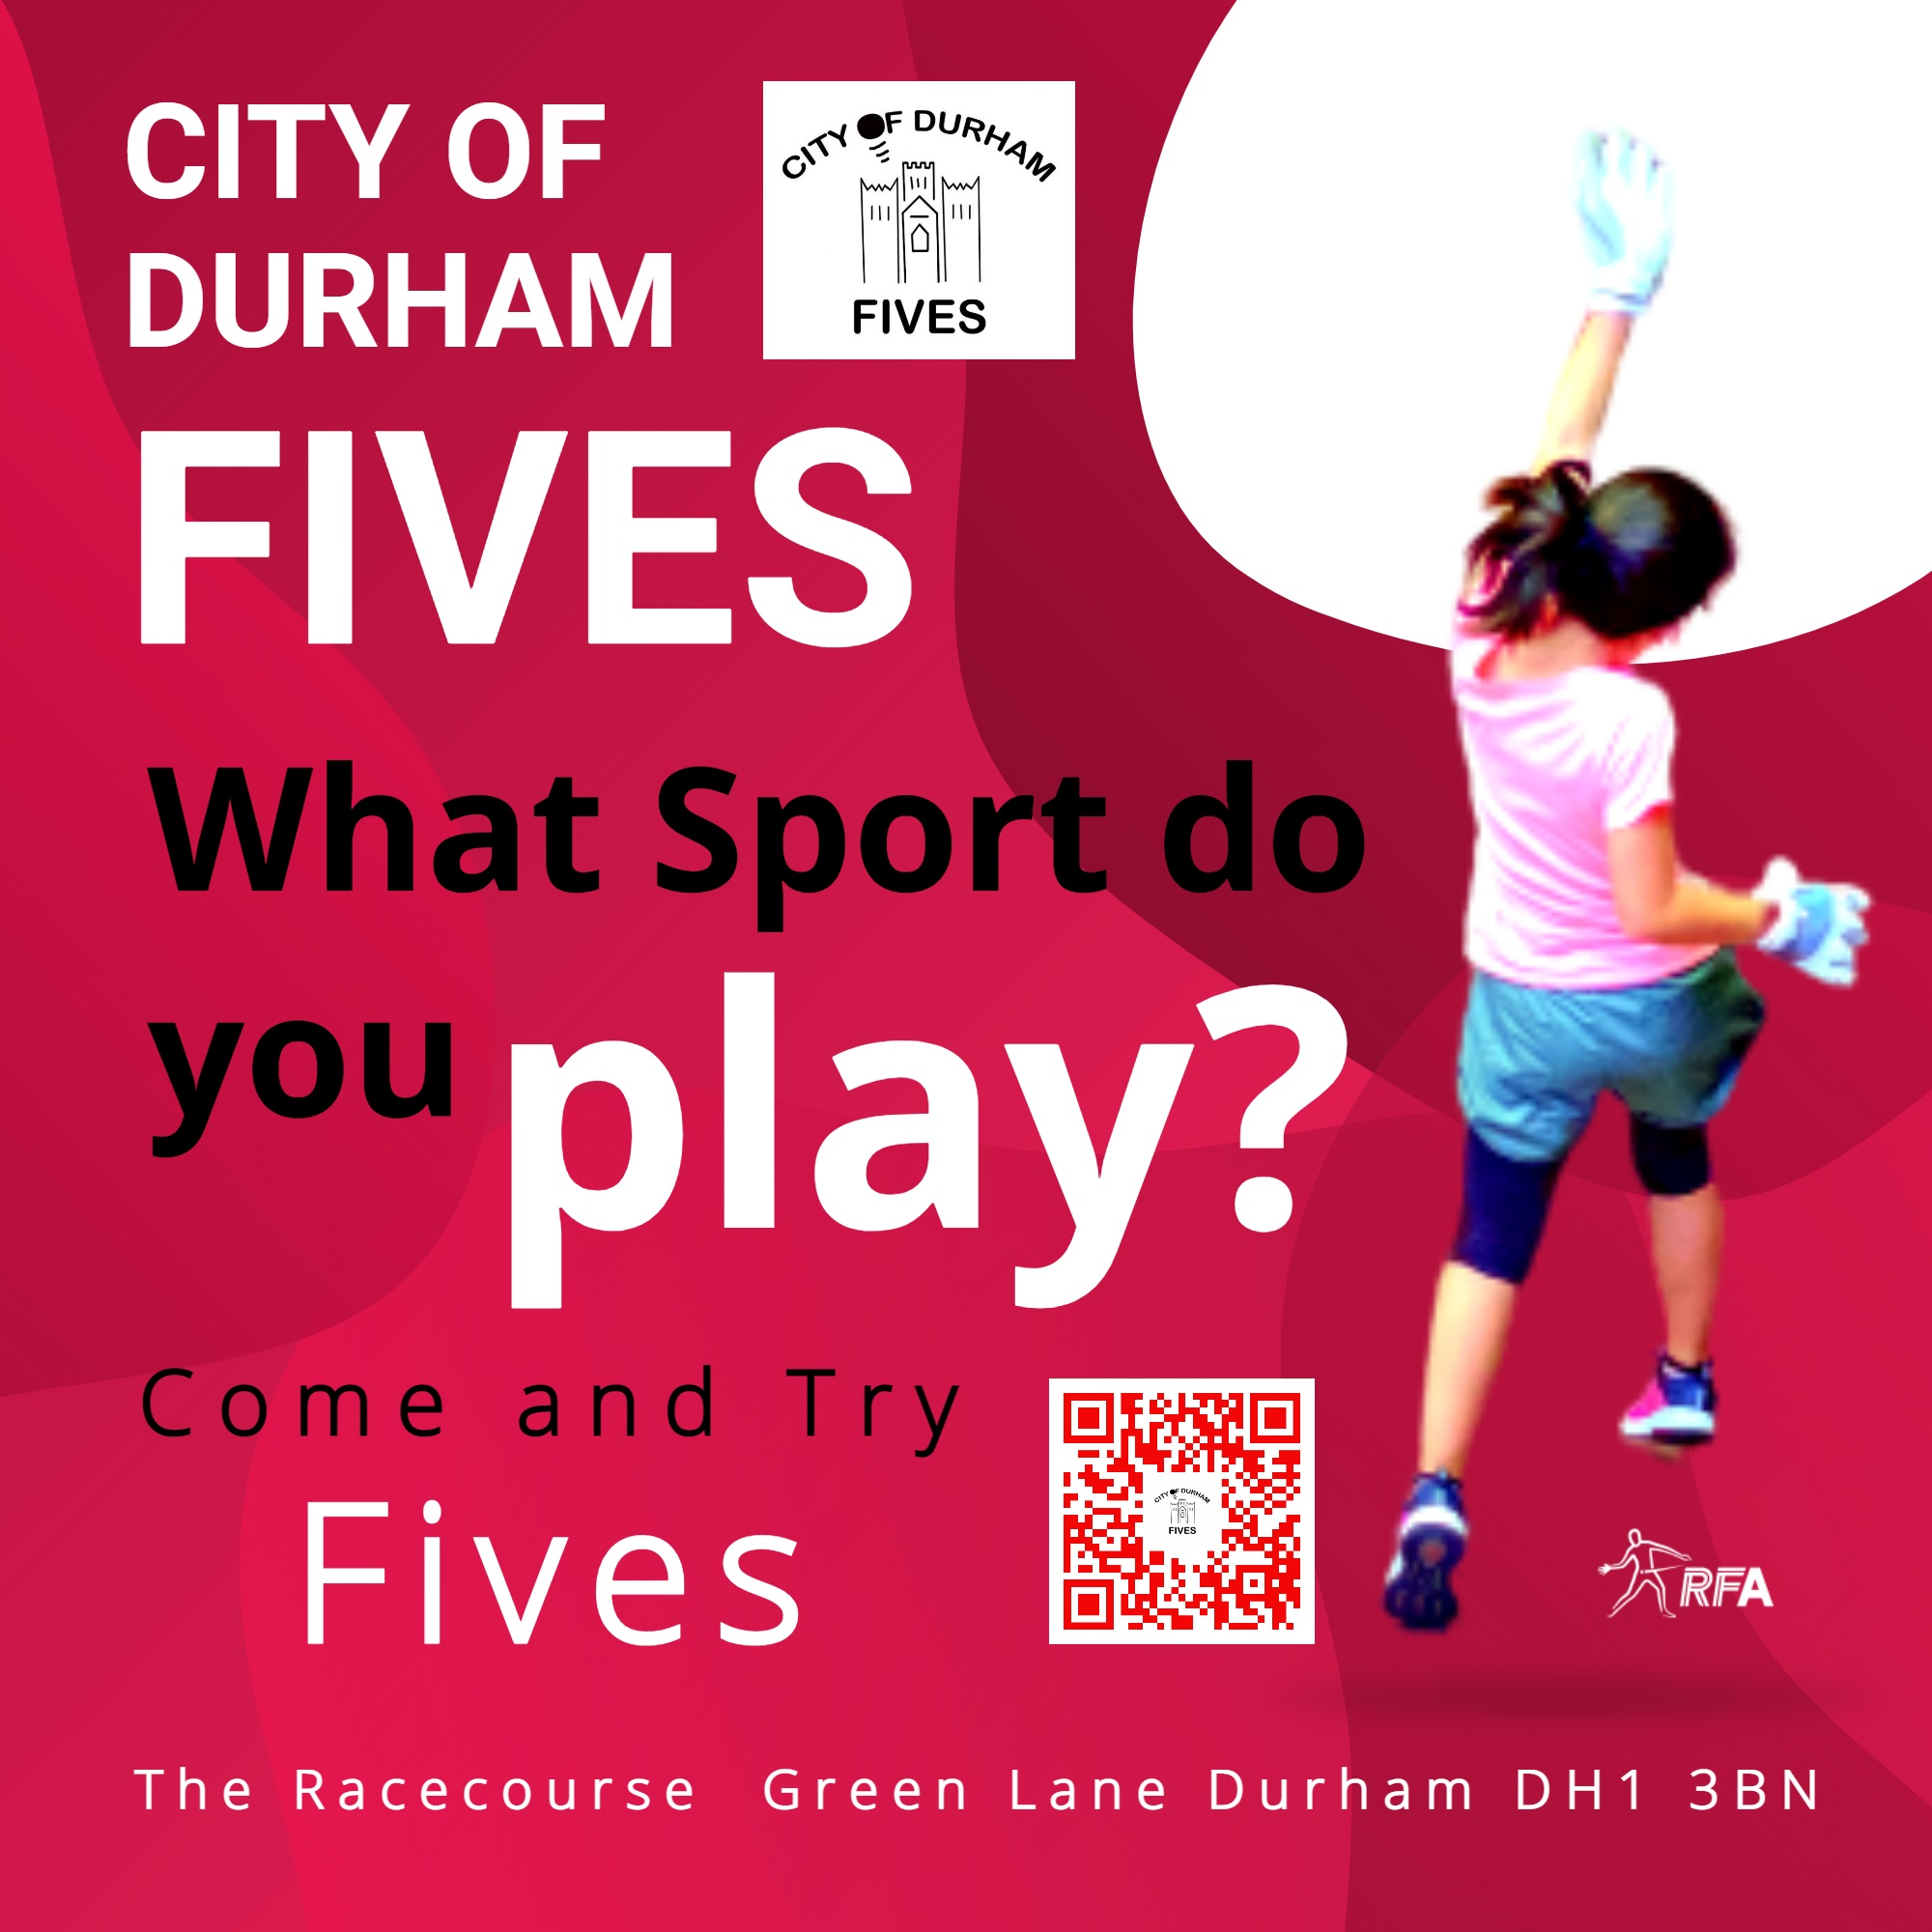 city of durham fives What sport